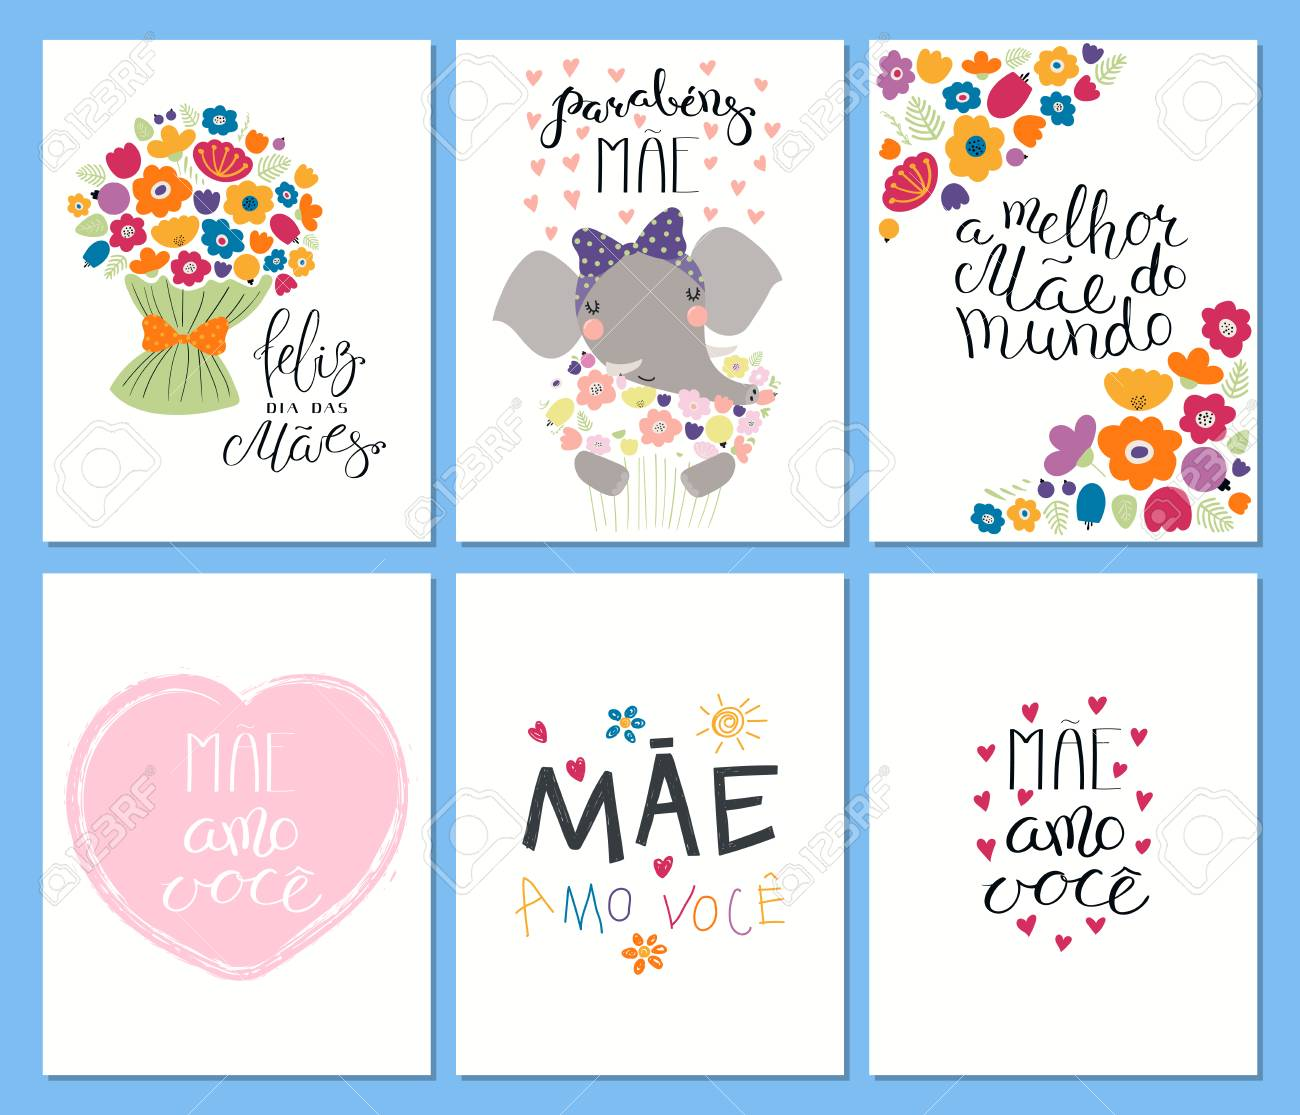 Set Of Mothers Day Cards Templates With Quotes In Portuguese